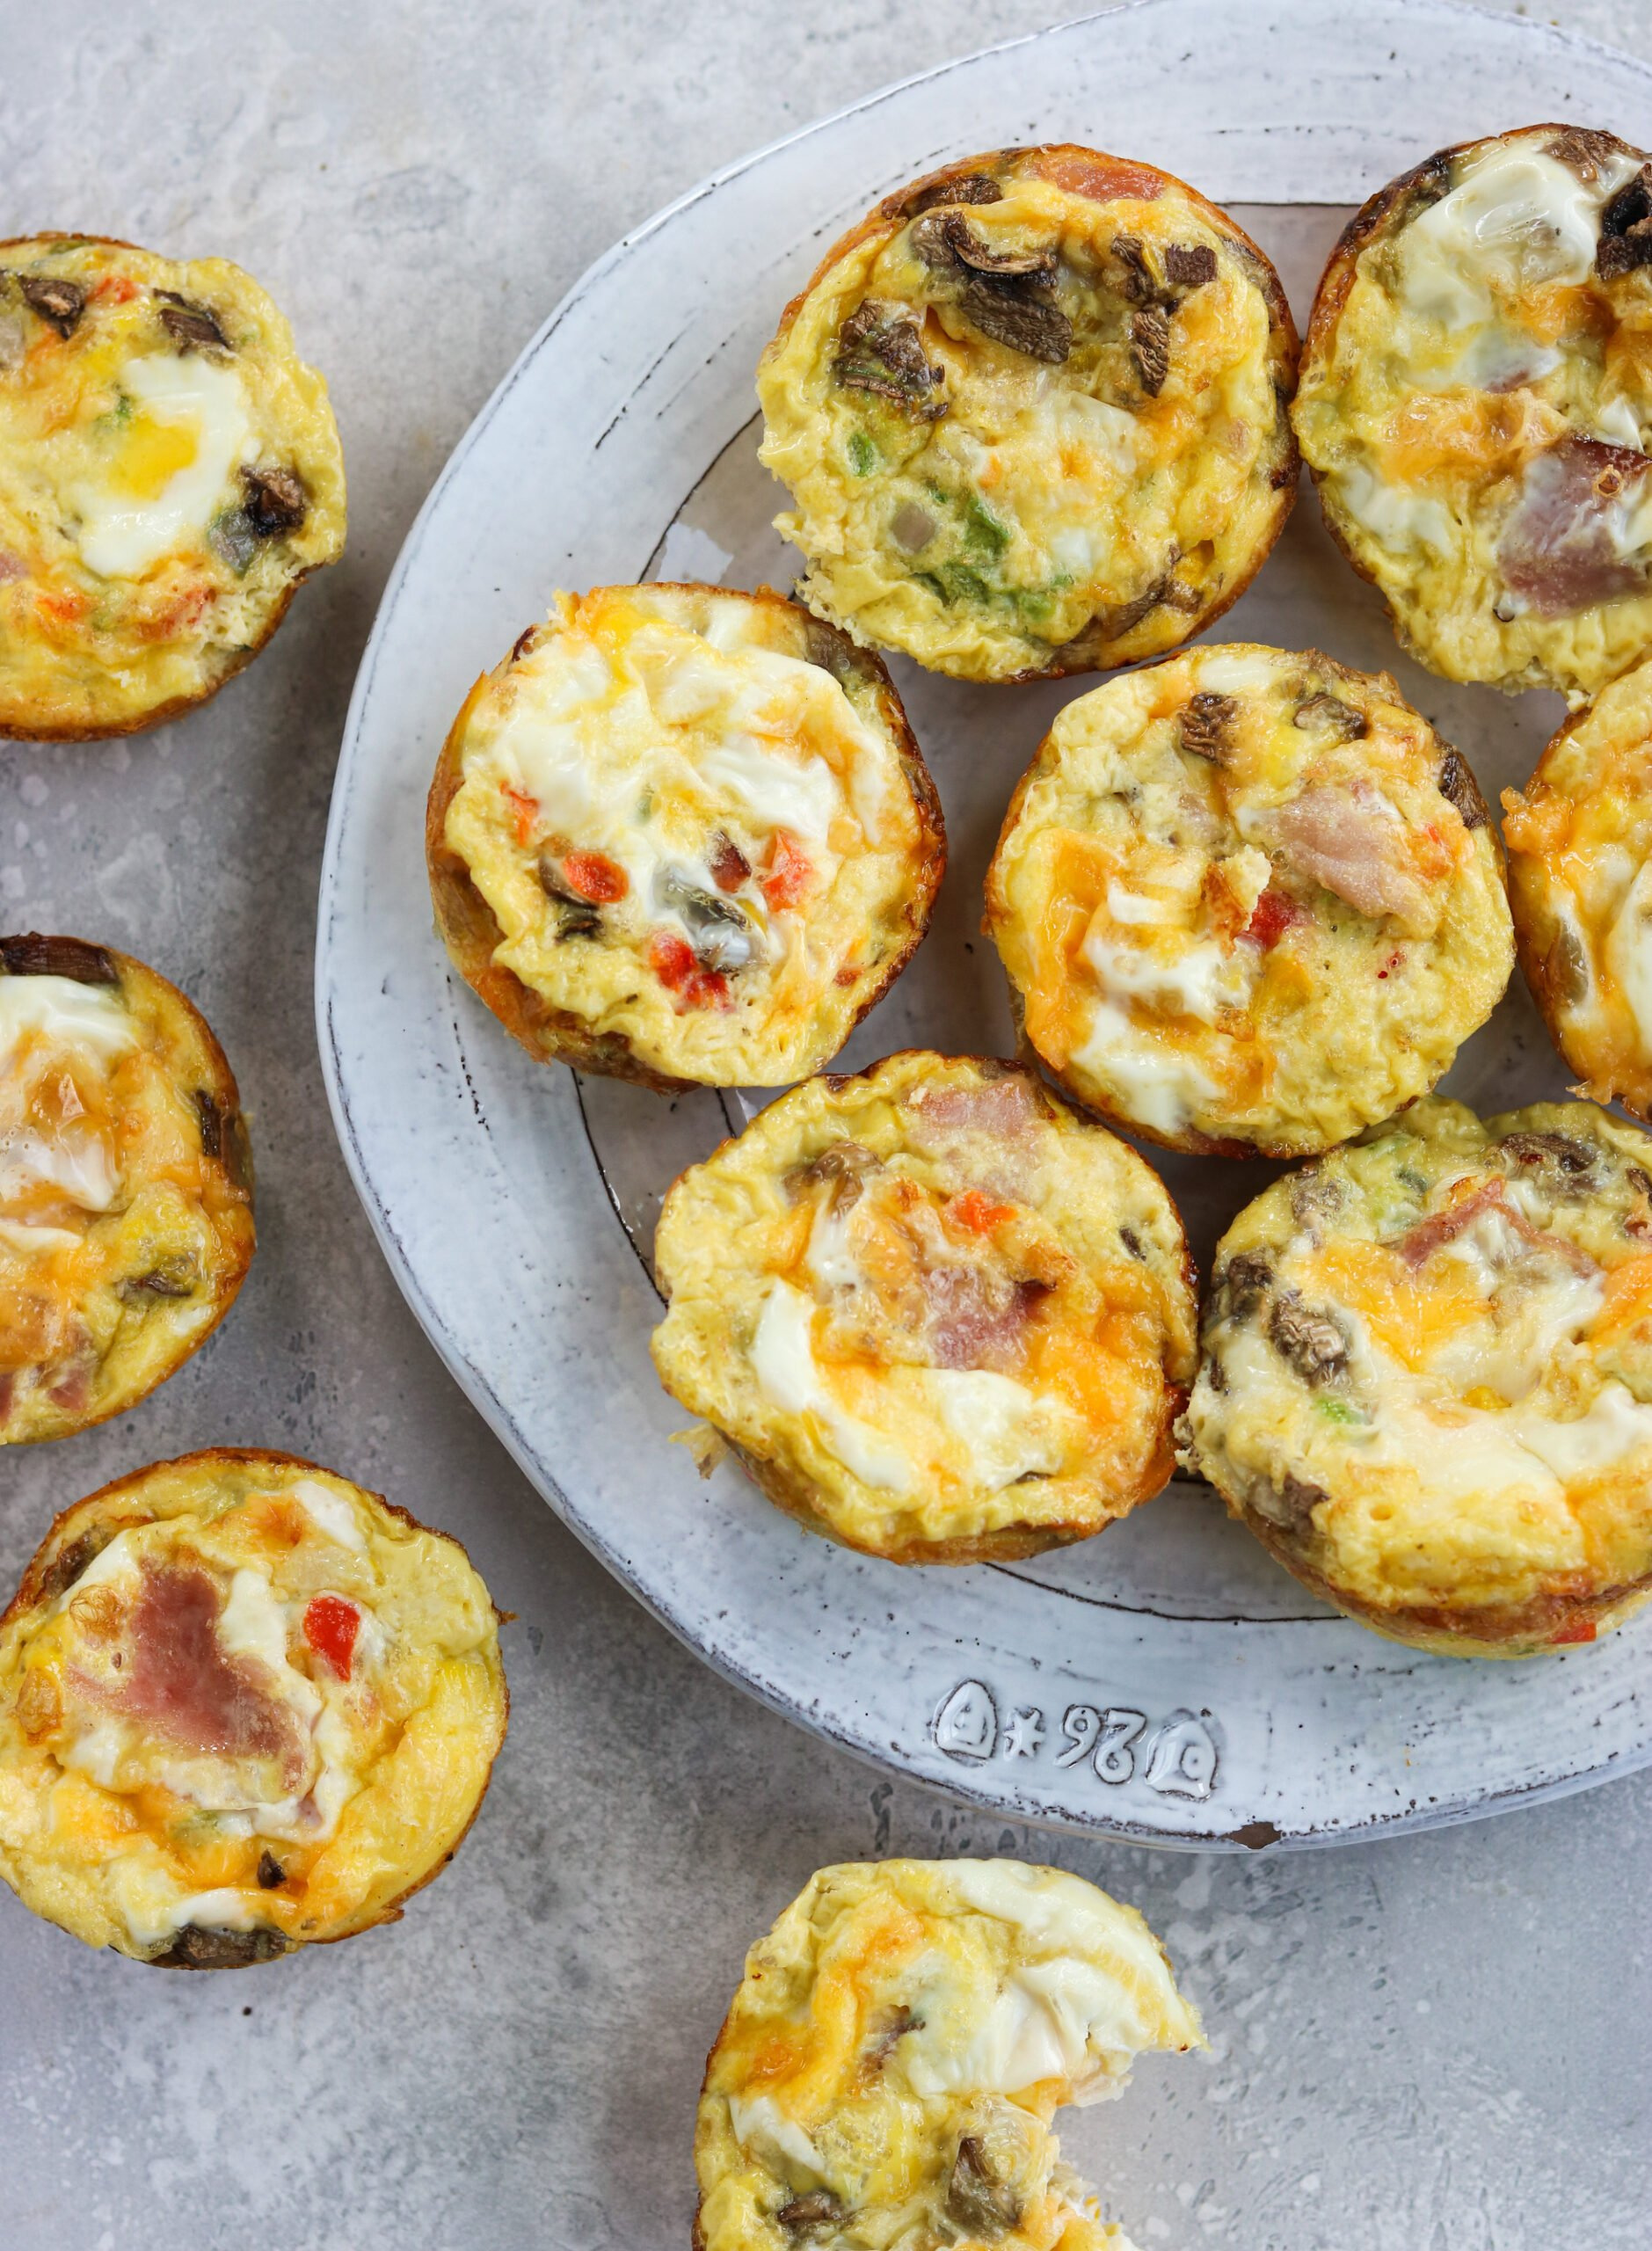 top view of Western omelette egg bites